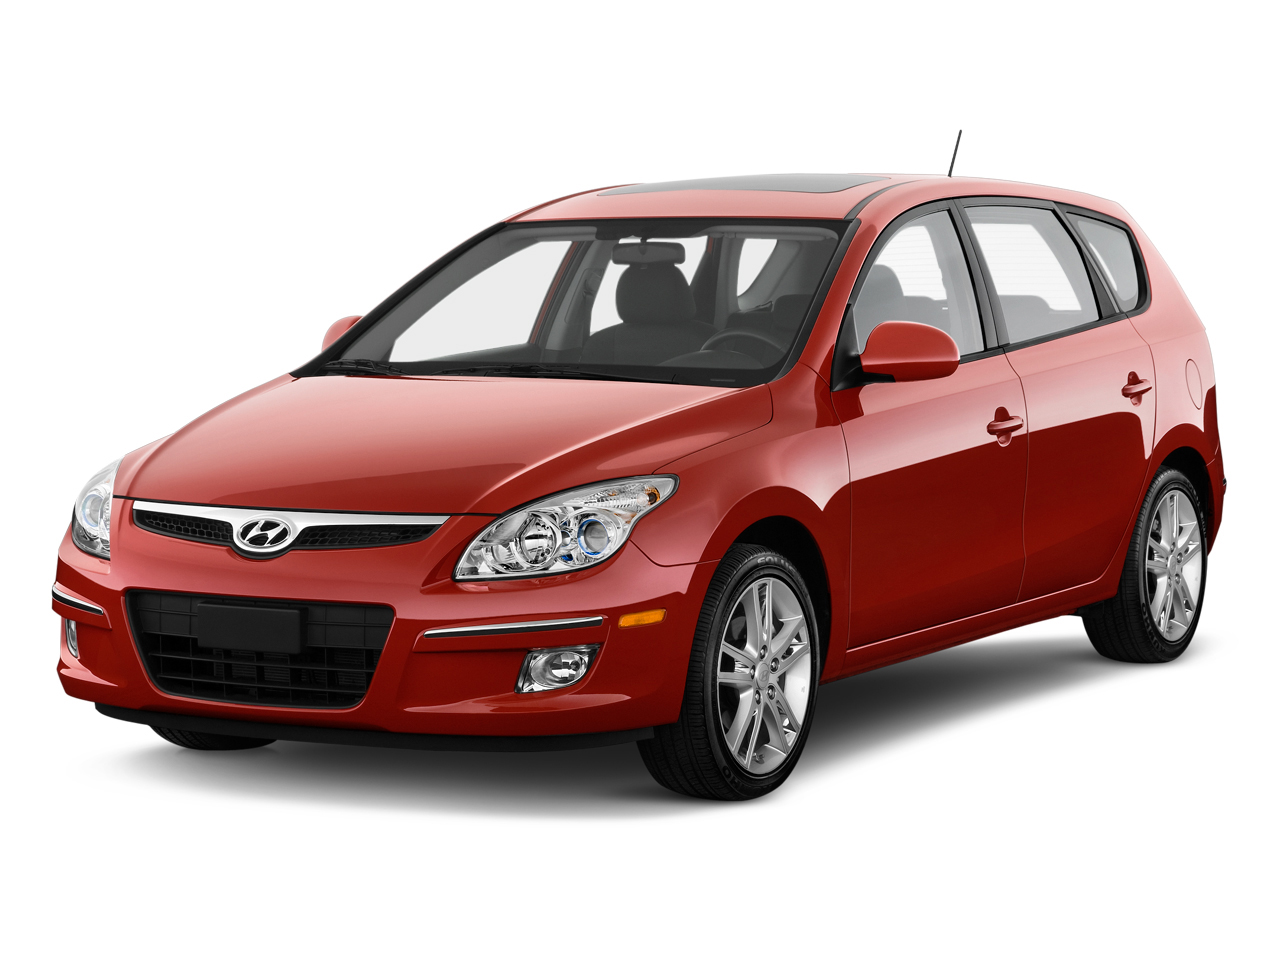 2011 Hyundai Elantra Touring Review Ratings Specs Prices And Photos The Car Connection